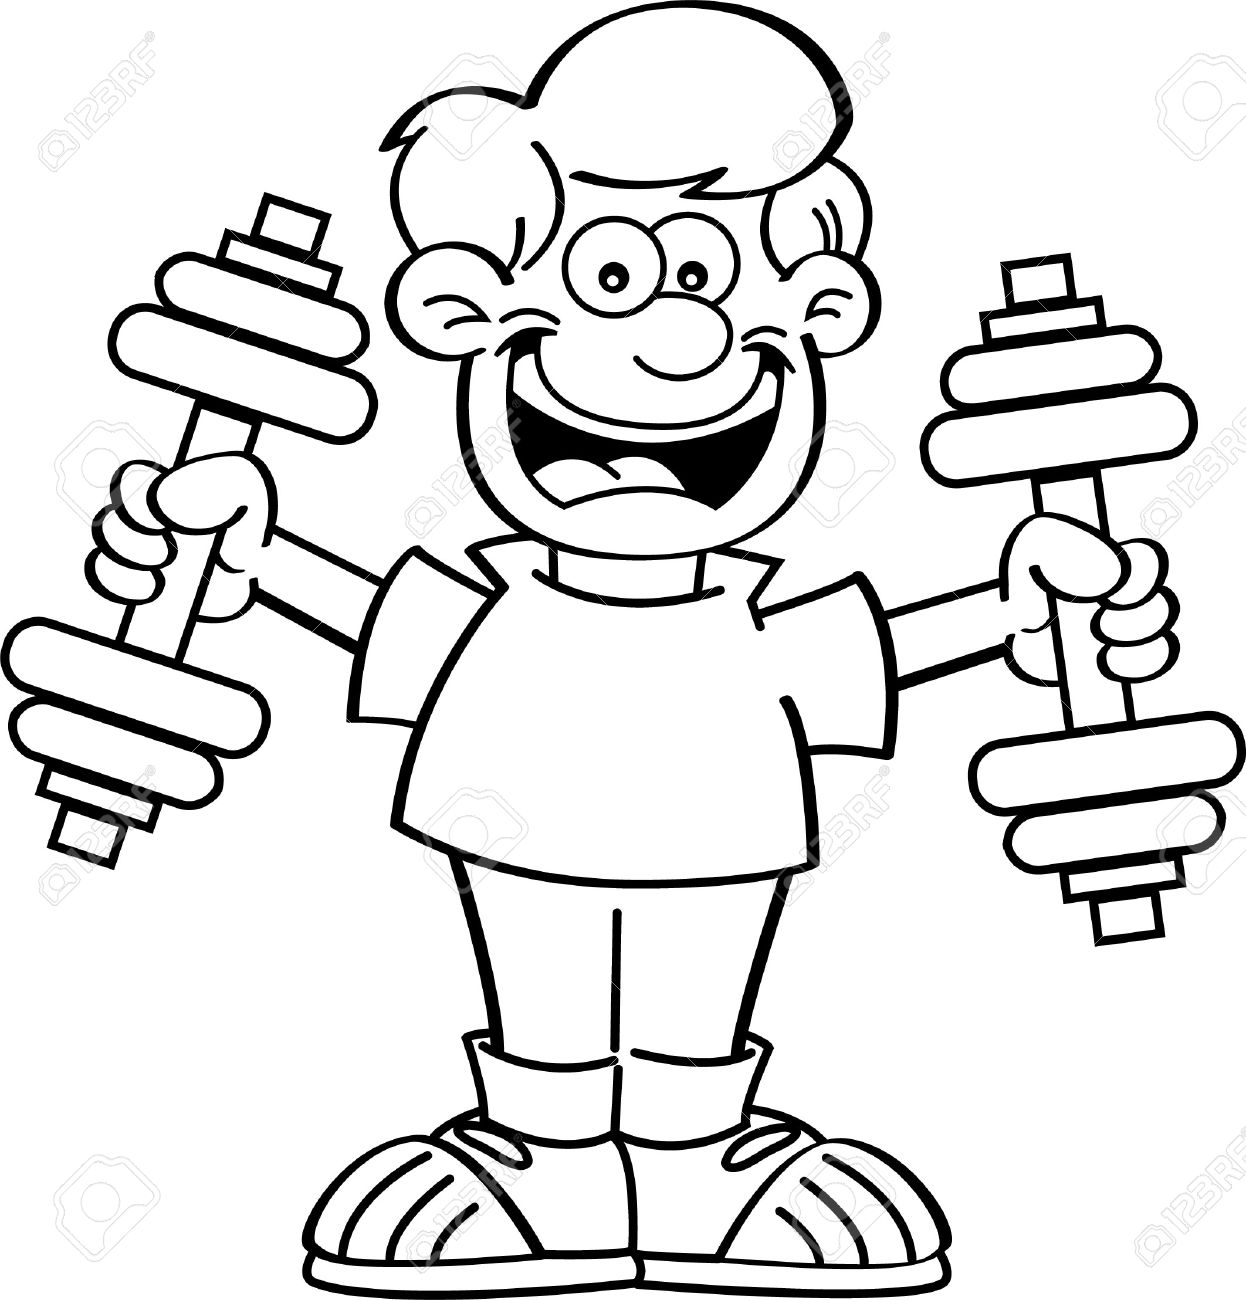 Exercise clipart black and white 5 » Clipart Station.